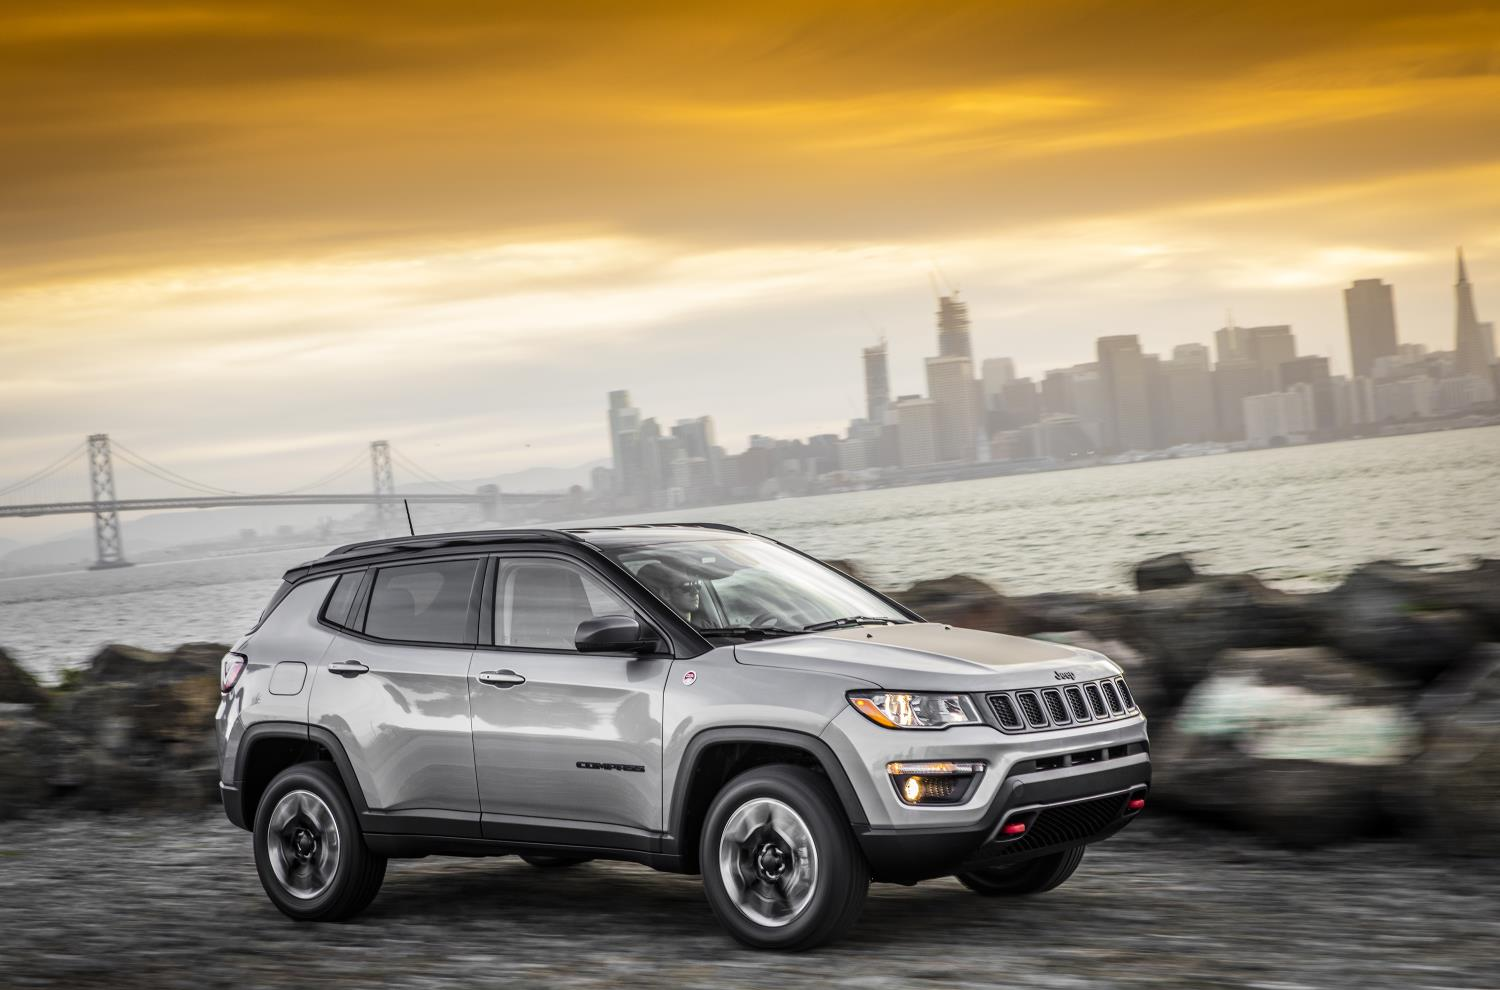 Jeep Compass, one of Jeep's top selling vehicles in calendar year 2017